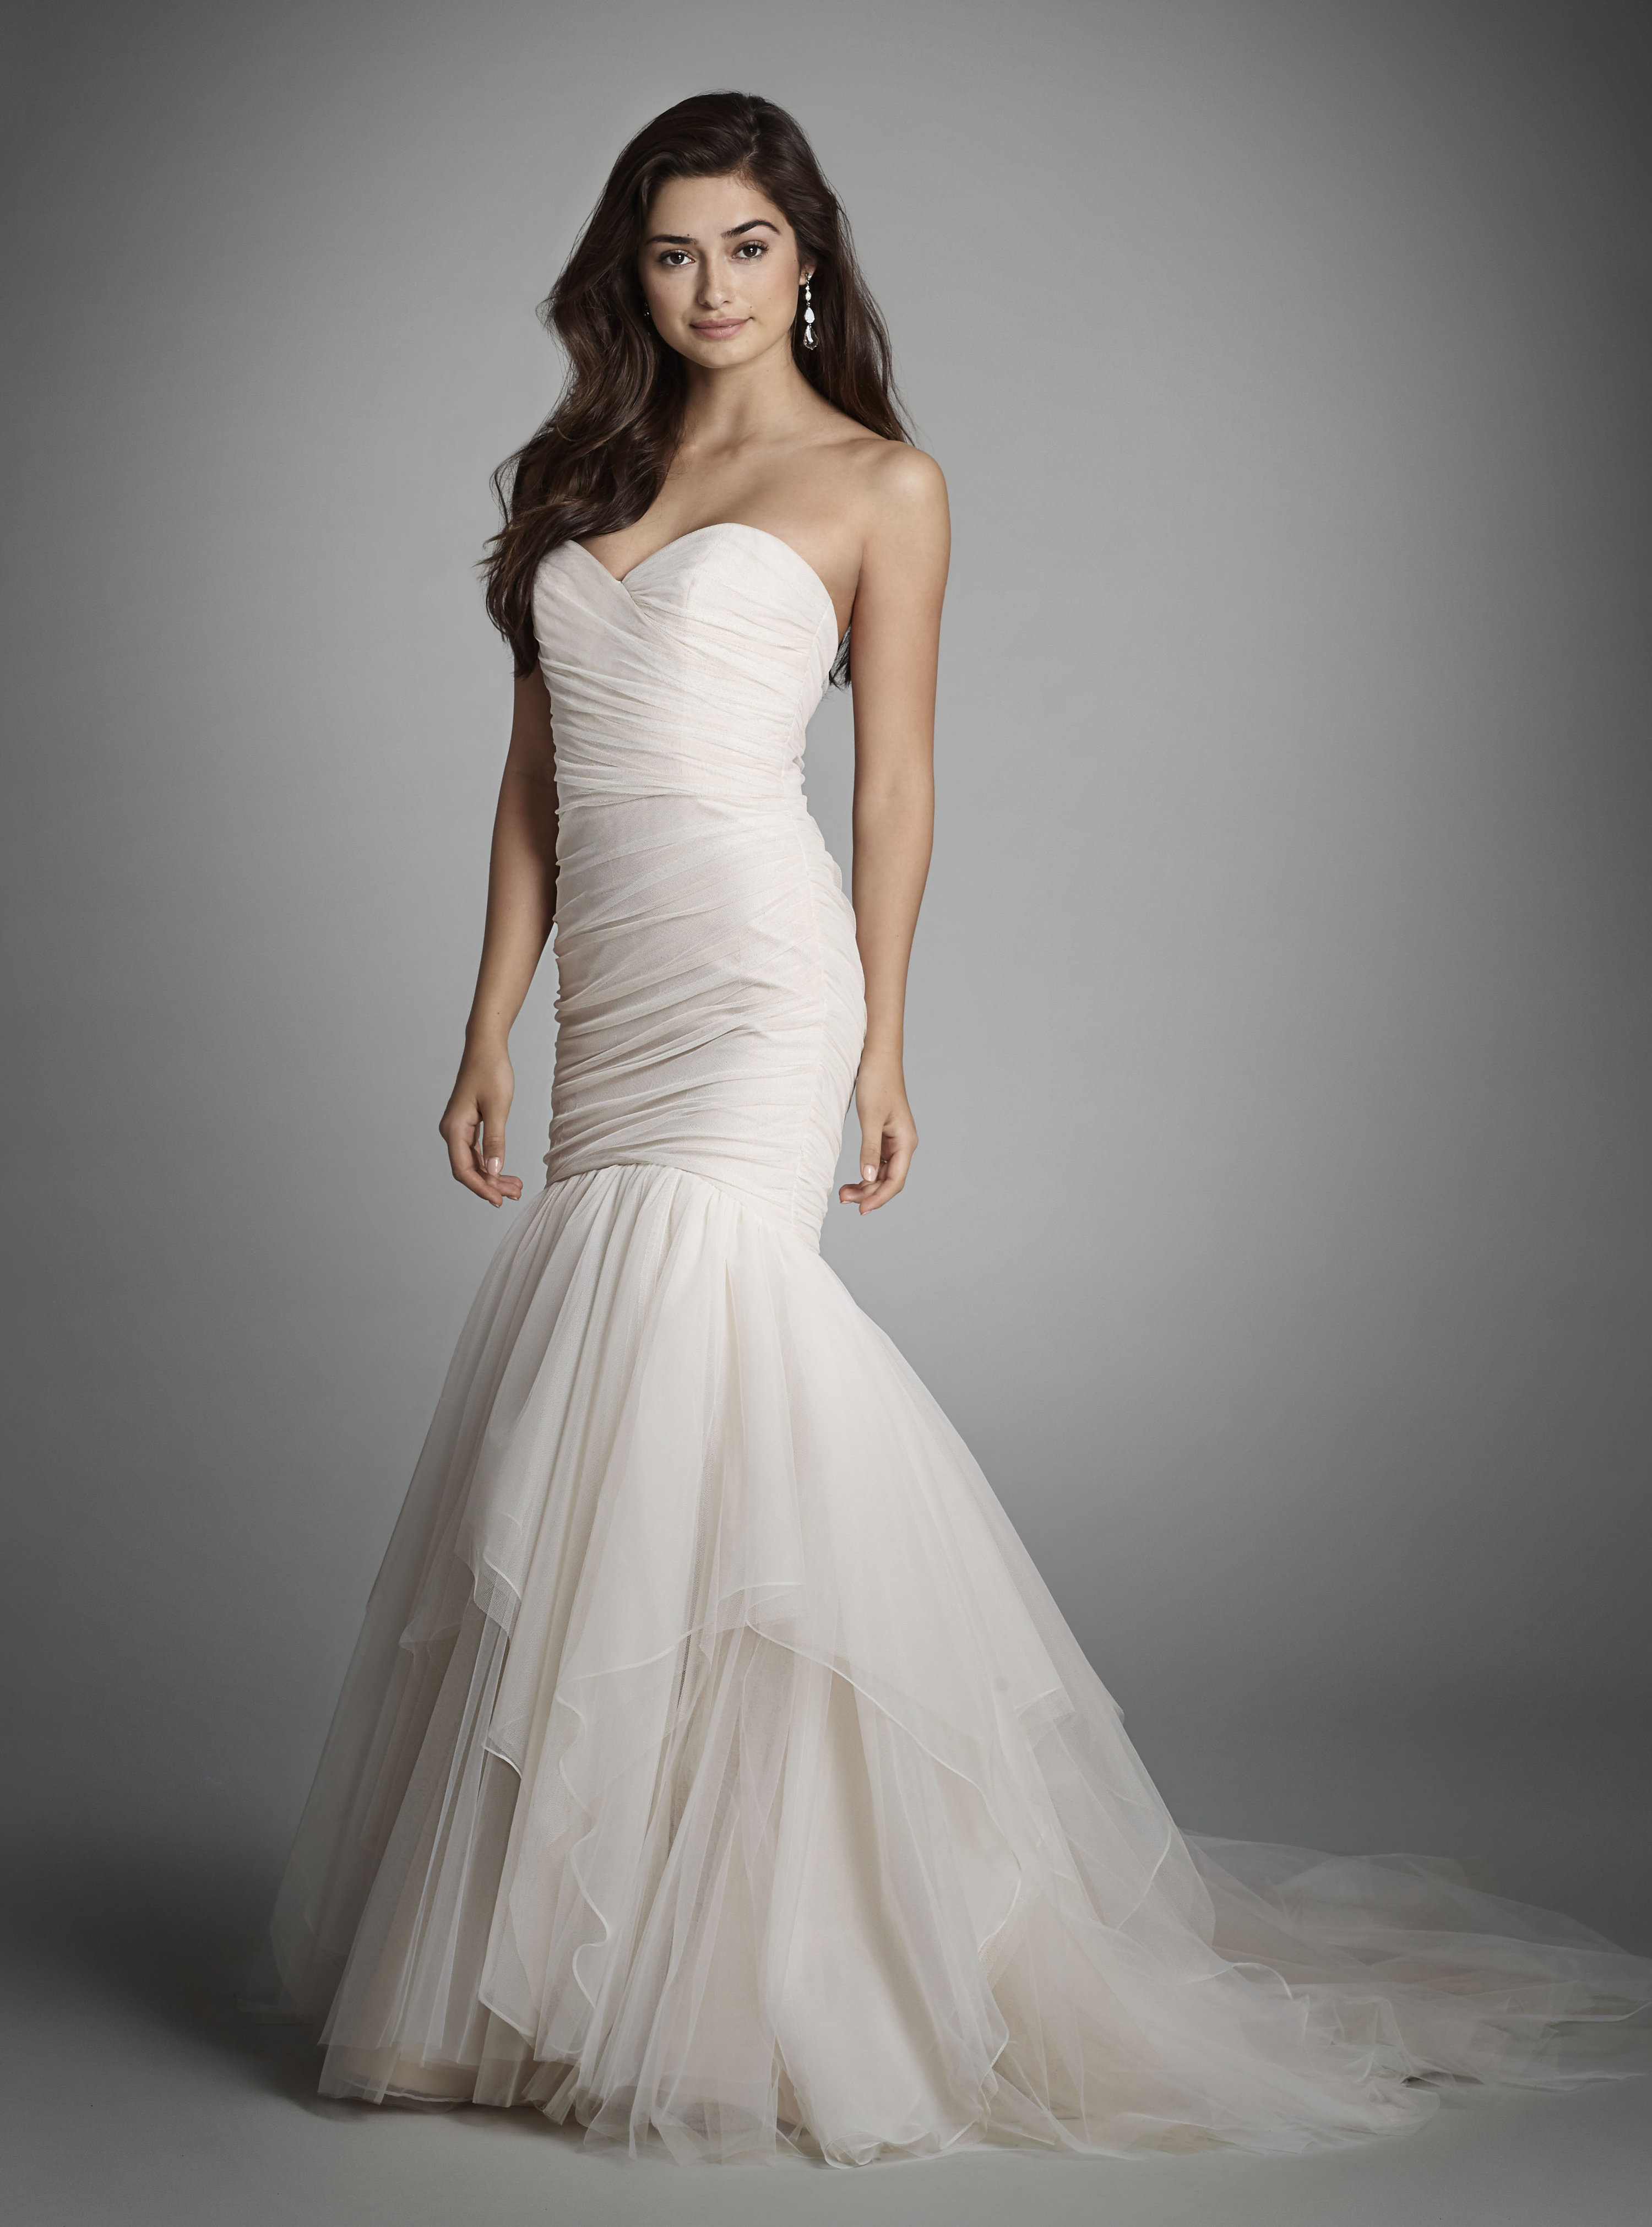 Bridal Gowns and Wedding Dresses by JLM Couture - Style 9706